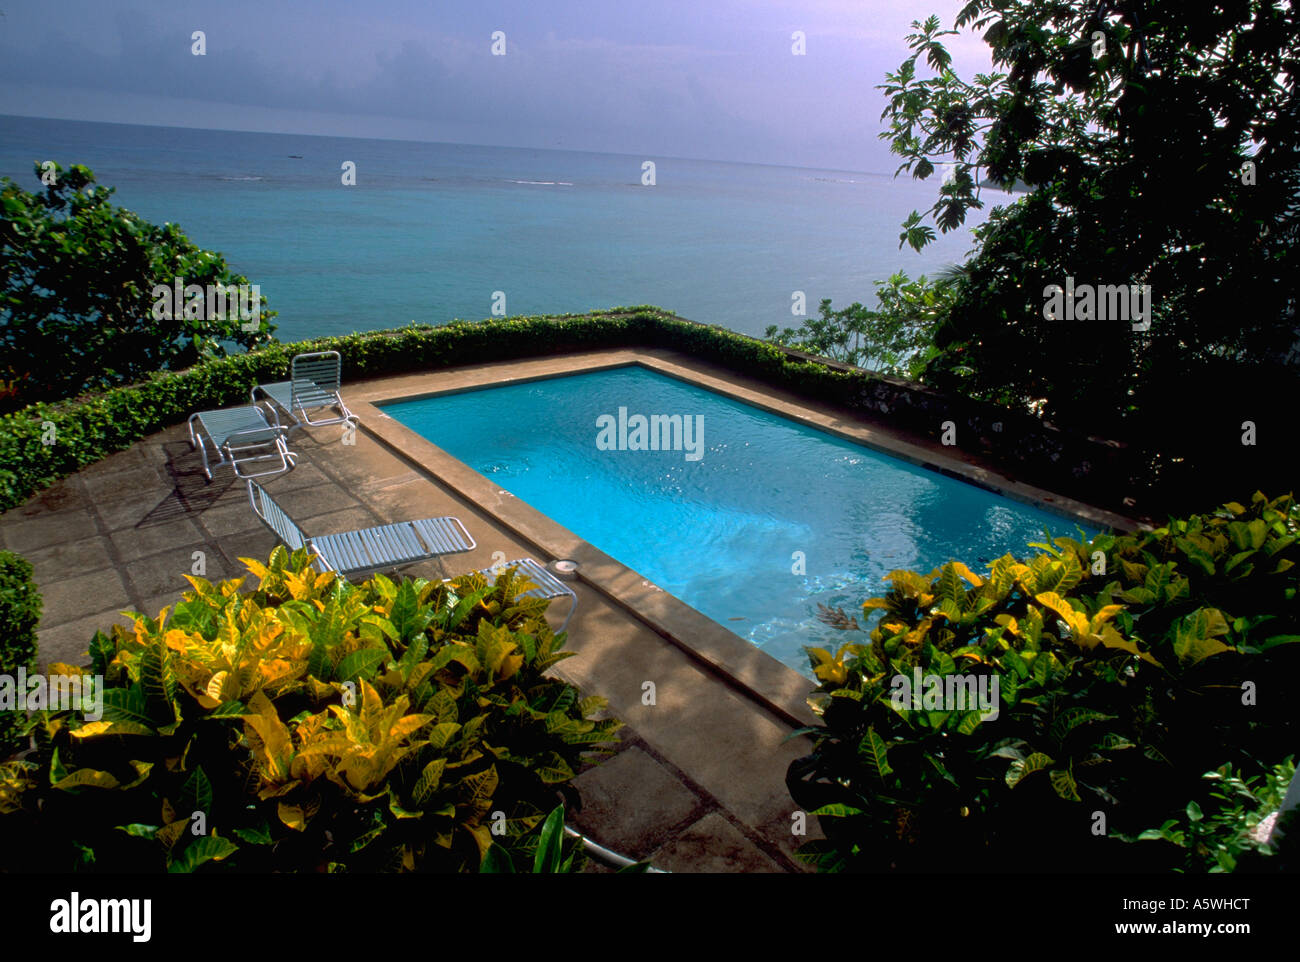 Painet hk2245 resort swimming pool ocho rios calm hotel overlook patio lawnchairs lounge chairs blue tile ocean vacation & Painet hk2245 resort swimming pool ocho rios calm hotel overlook ...